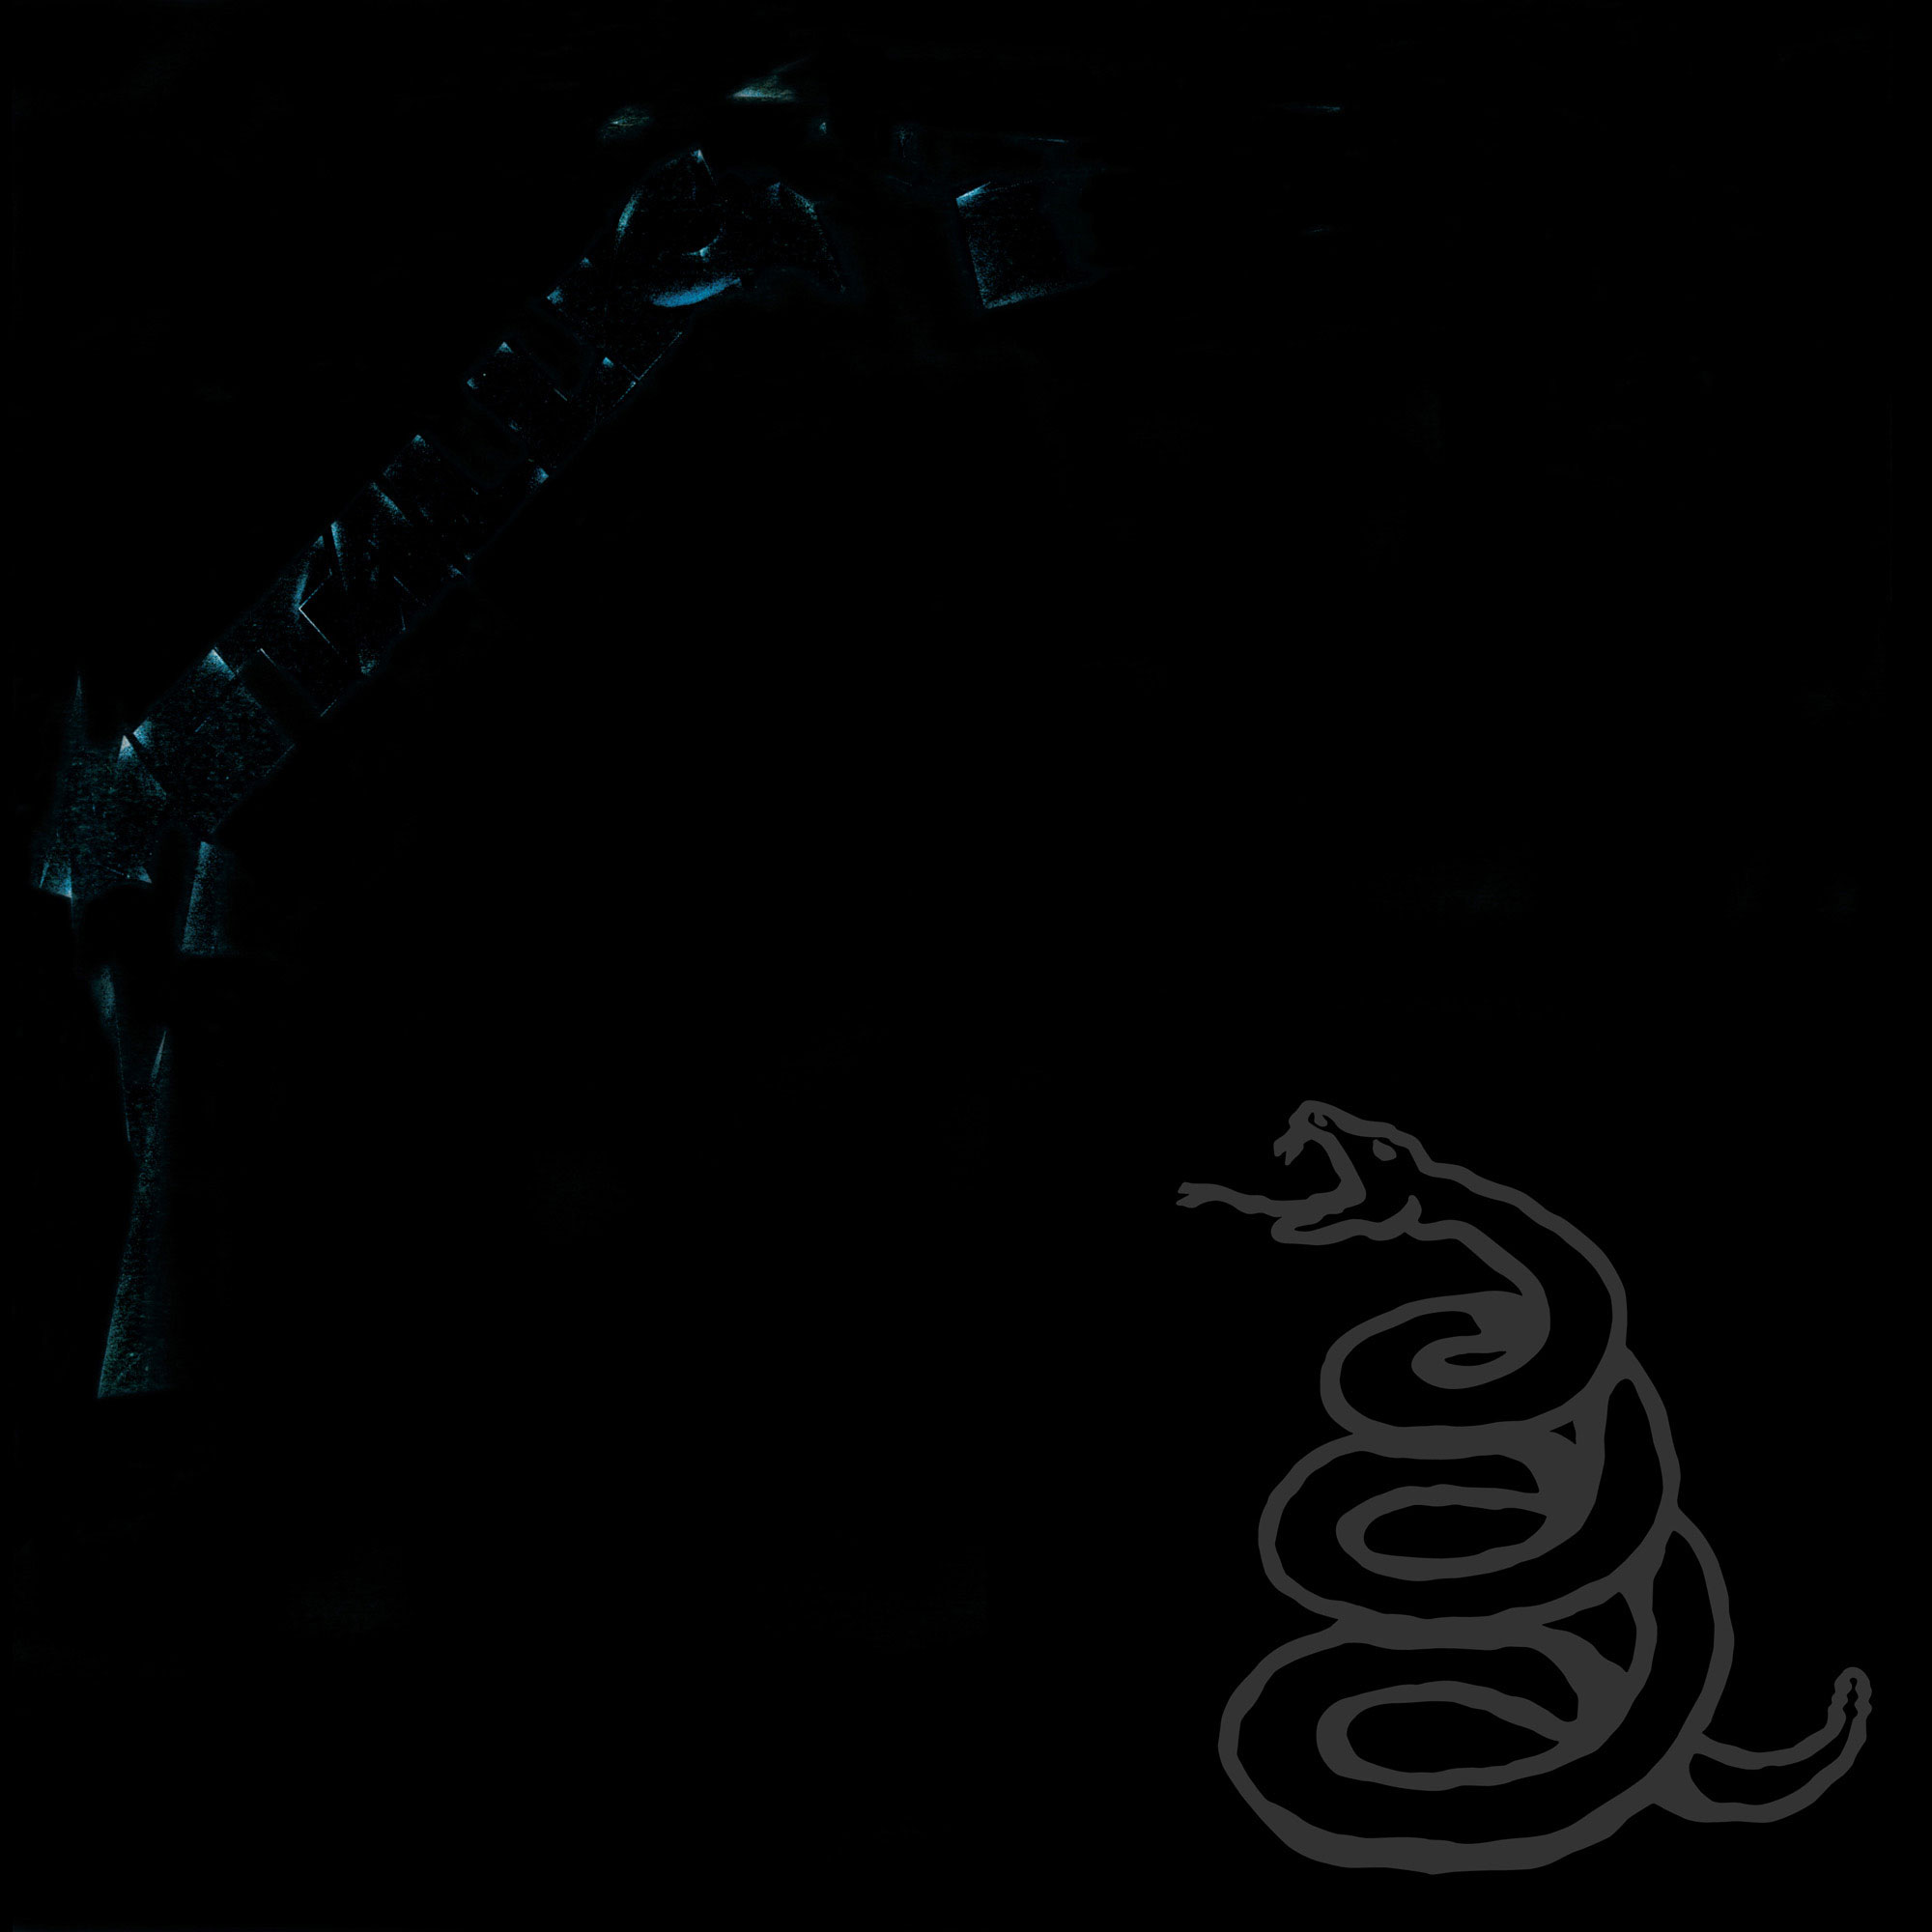 Metallica Remastered. Available September 10th.